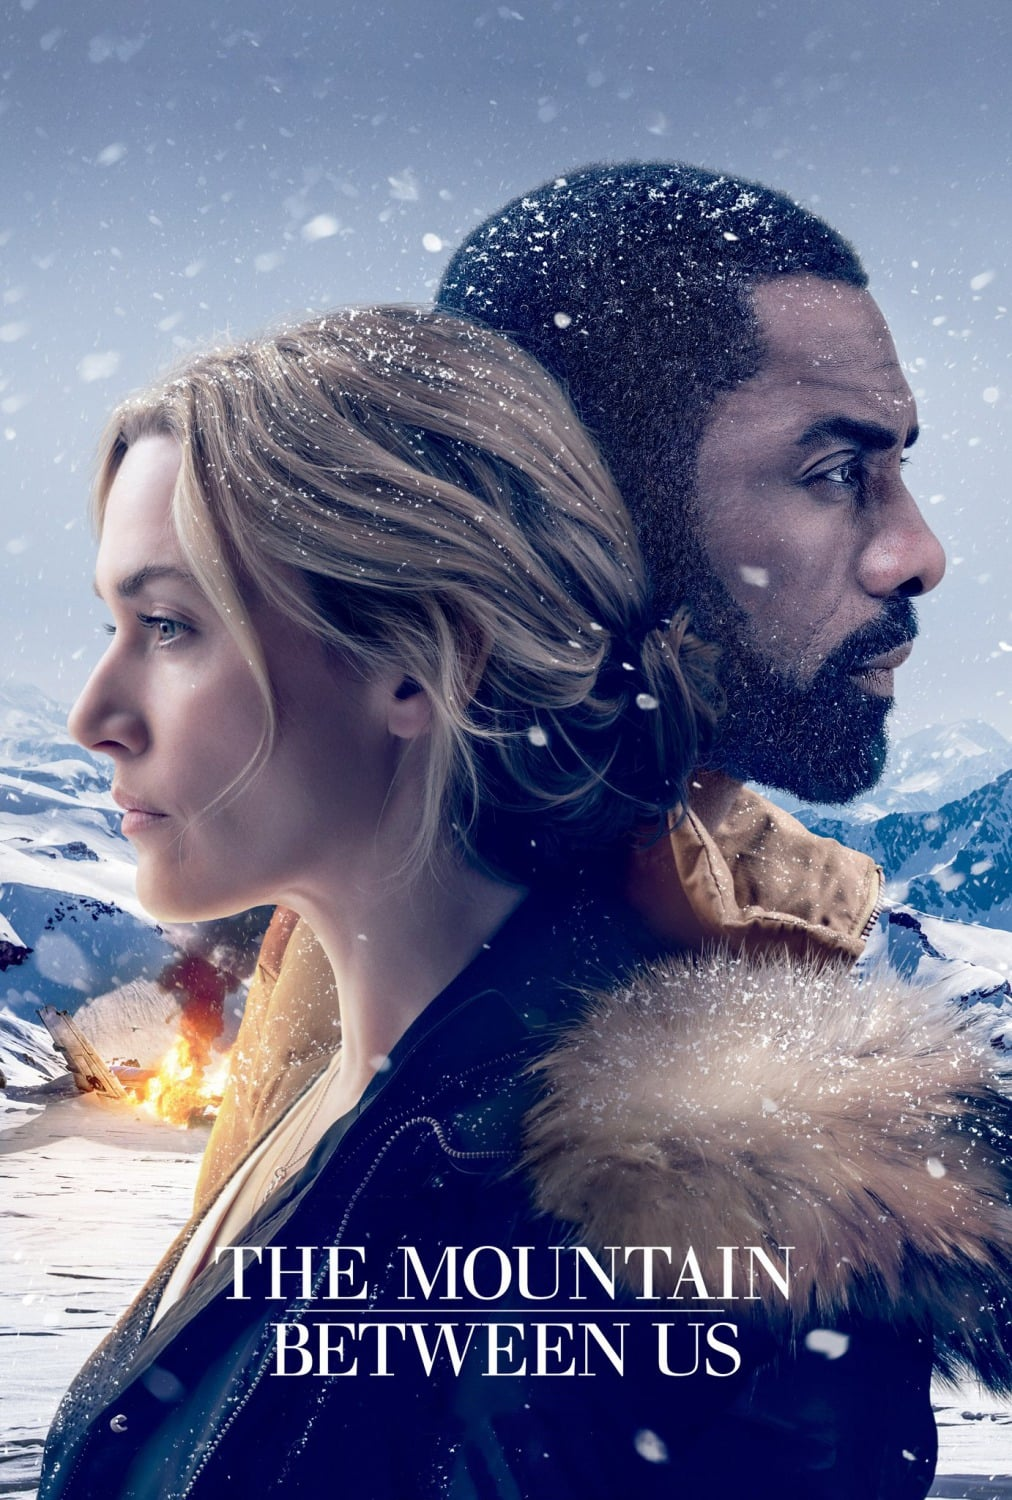 image for The Mountain Between Us